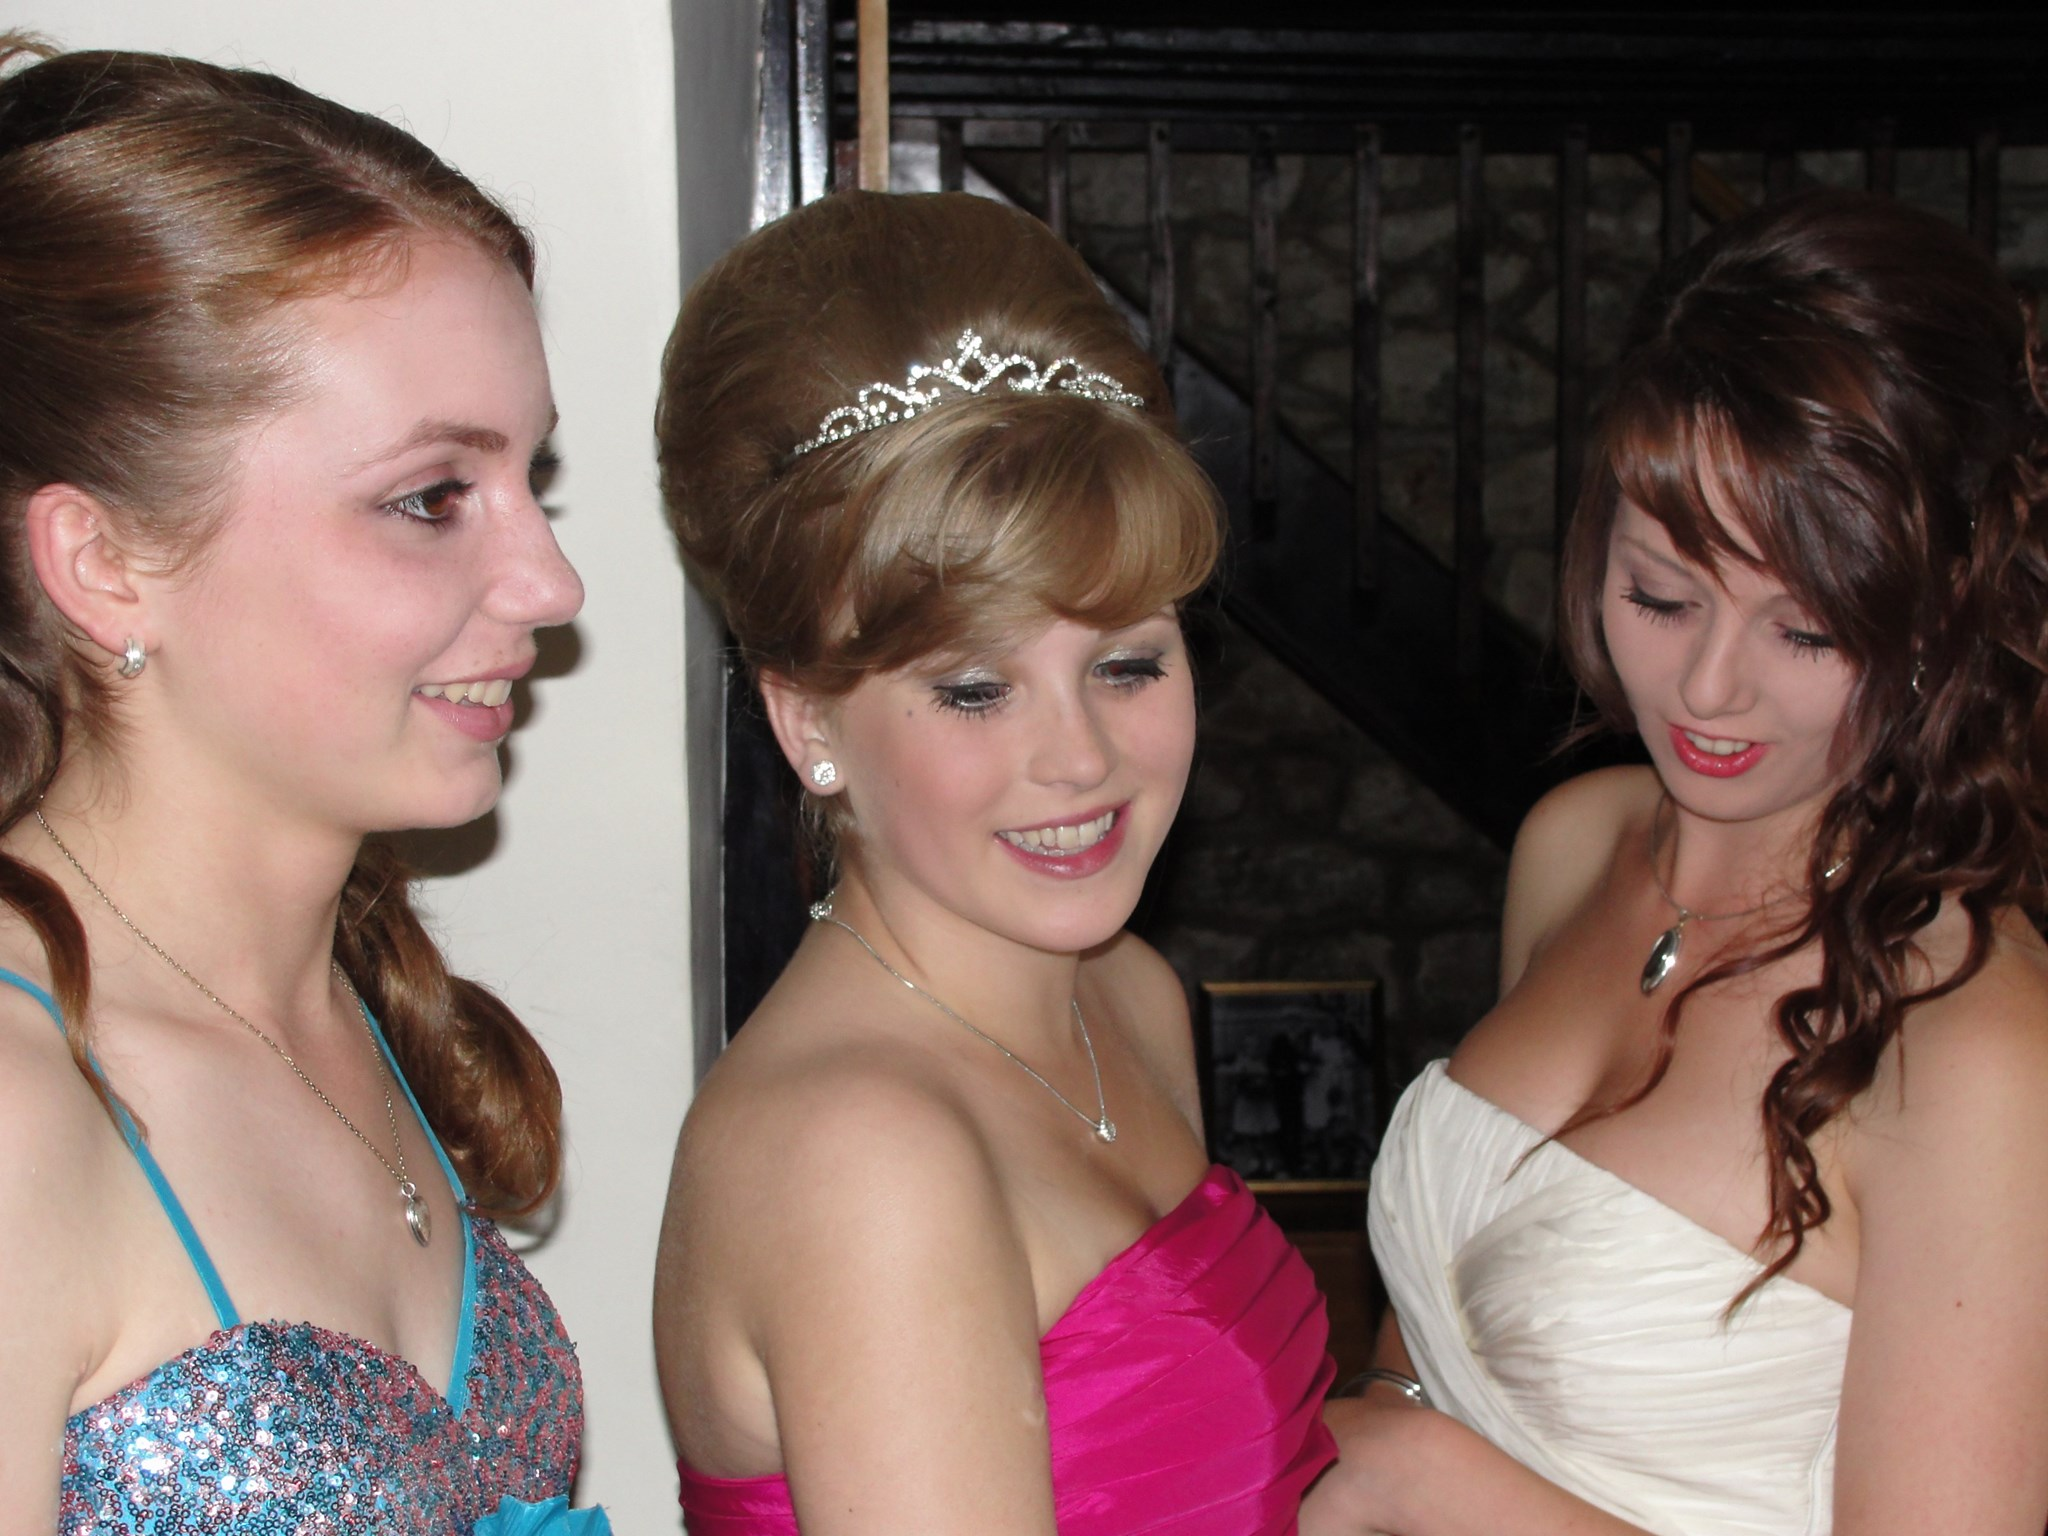 Helen with friends prom night